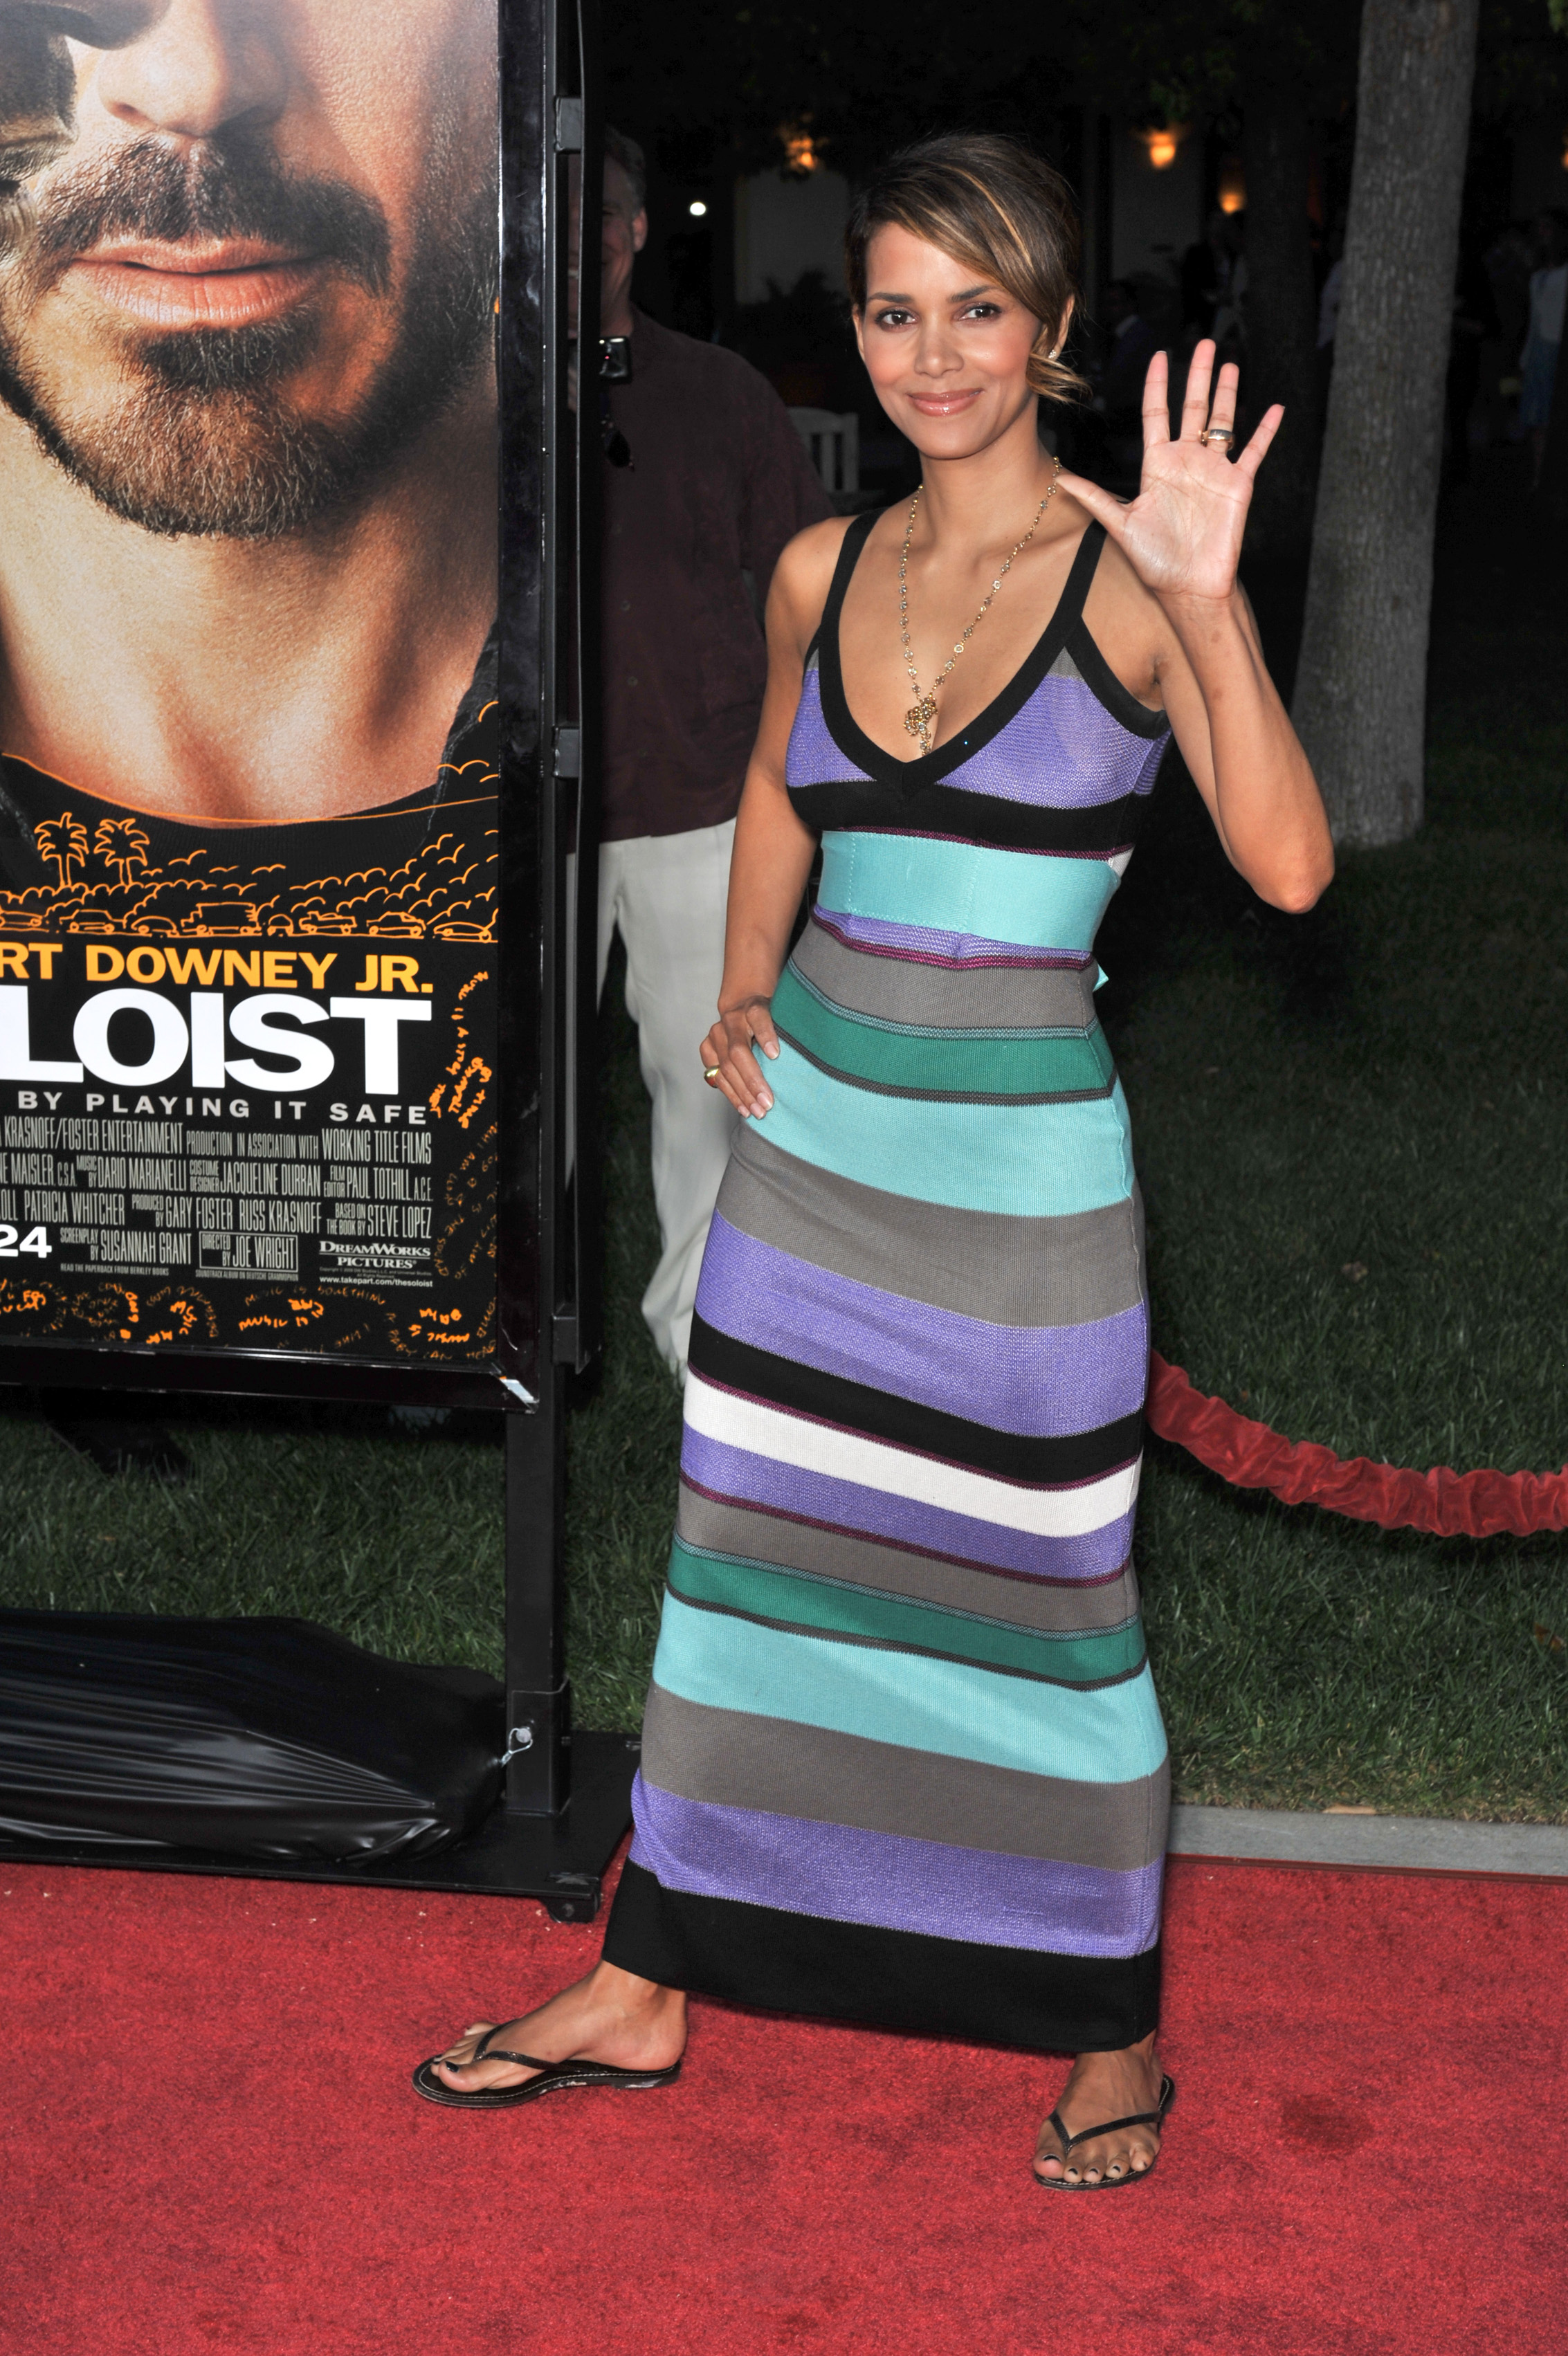 65461_Halle_Berry_The_Soloist_premiere_in_Los_Angeles_45_122_34lo.jpg